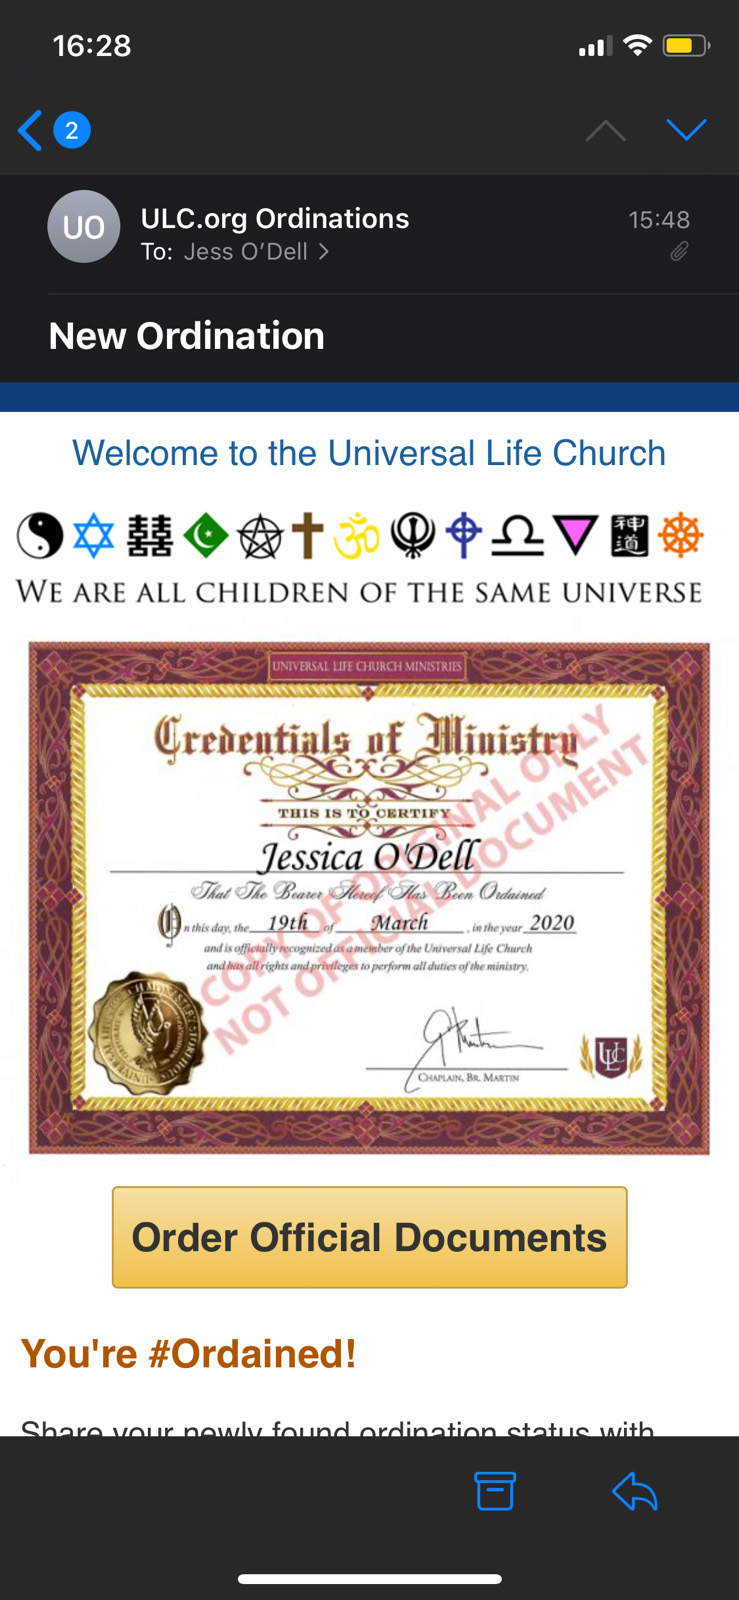 A screenshot of Jess' ordination from the Universal Life Church to marry Christie and Jeff.